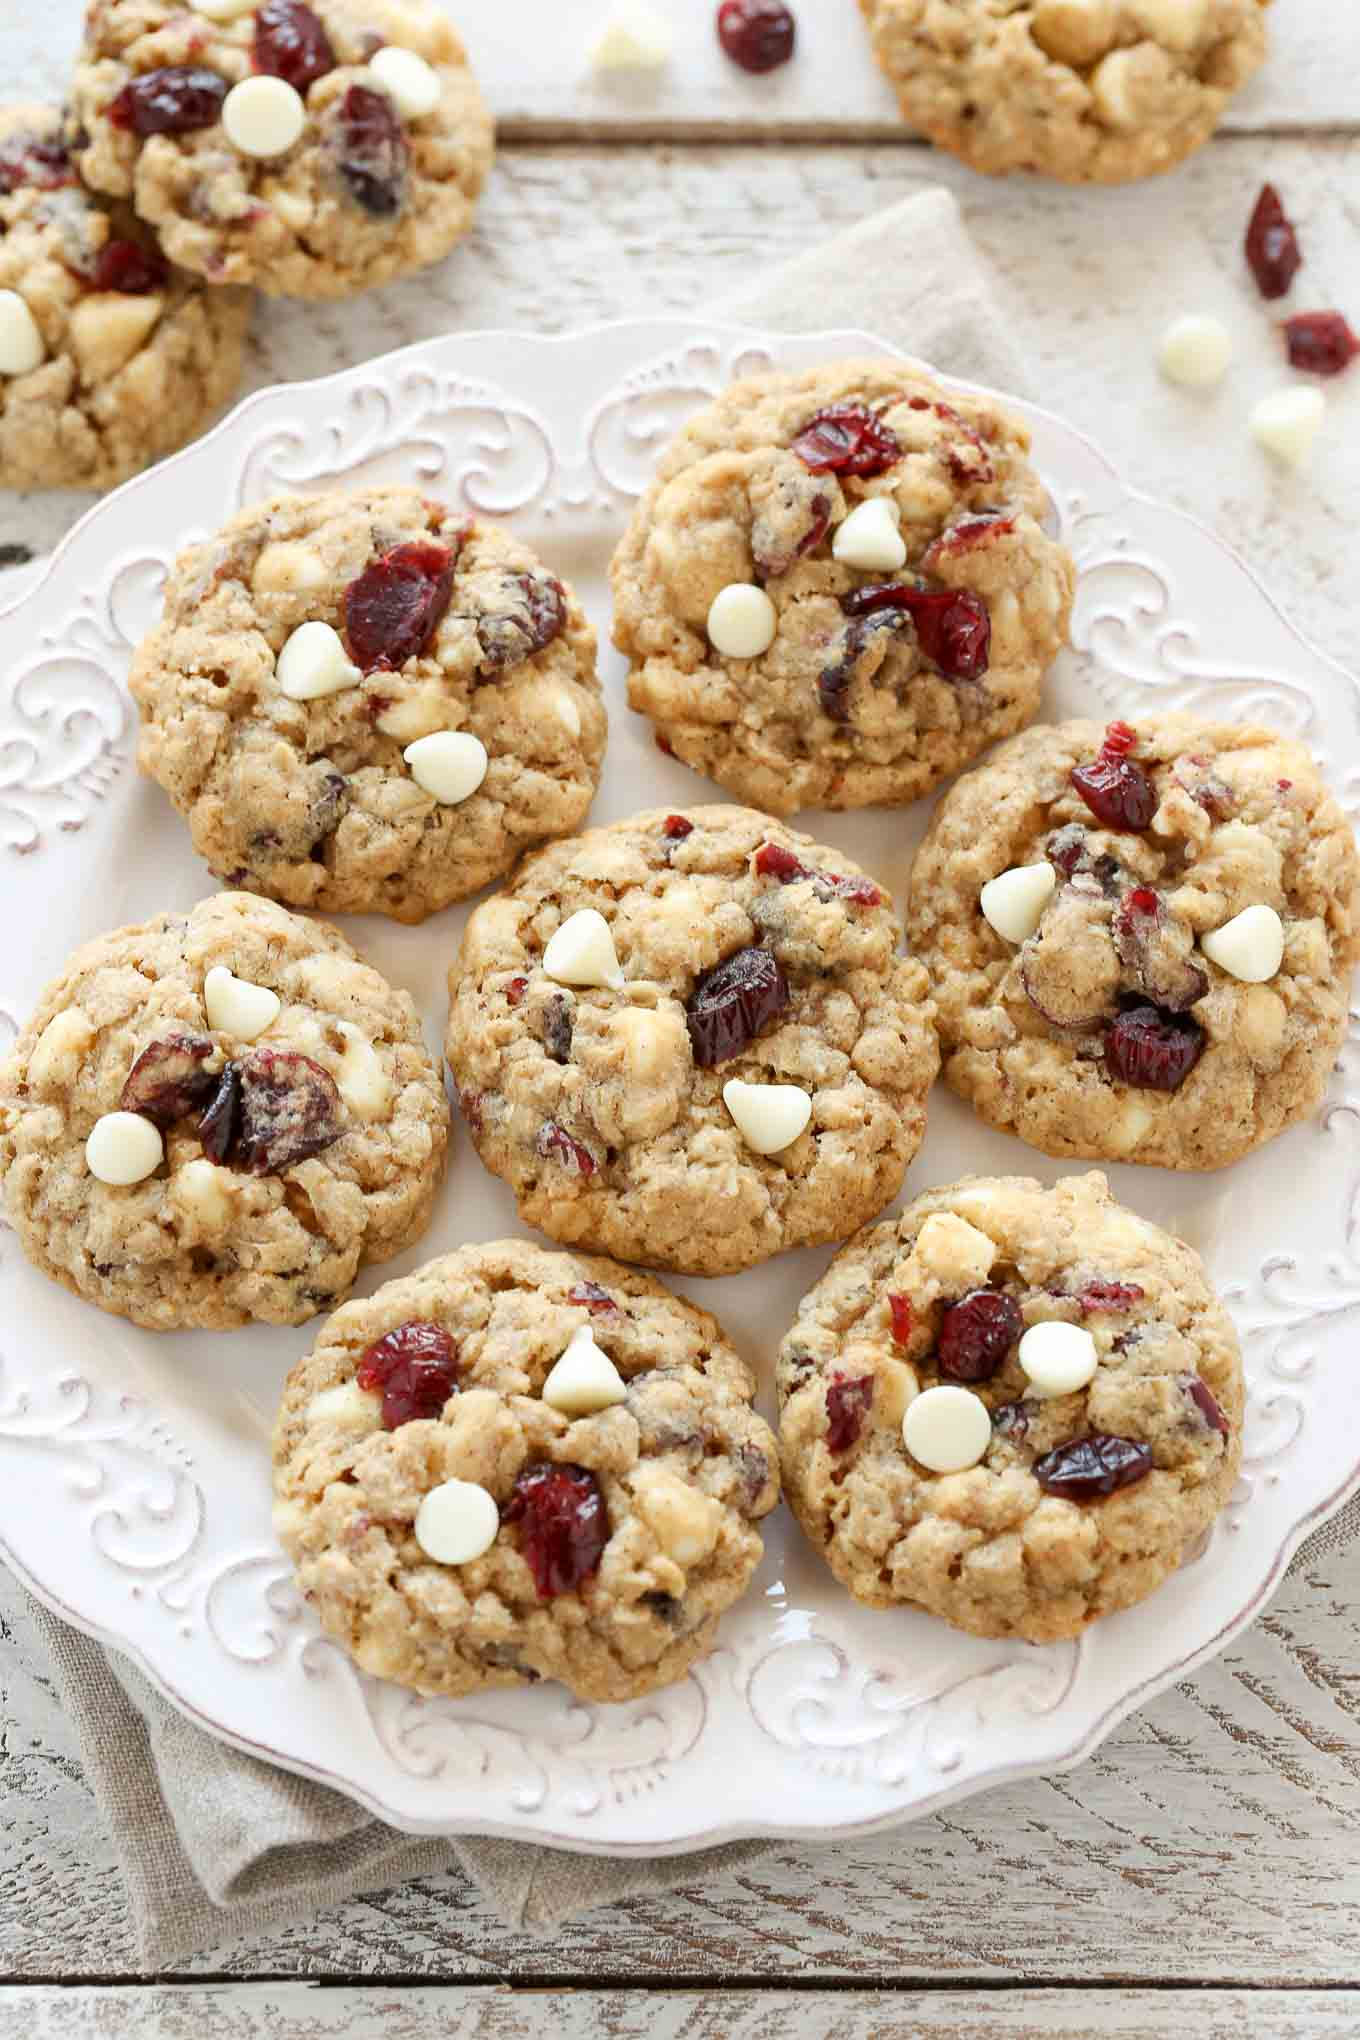 Chewy Oatmeal White Chocolate Cranberry Cookies